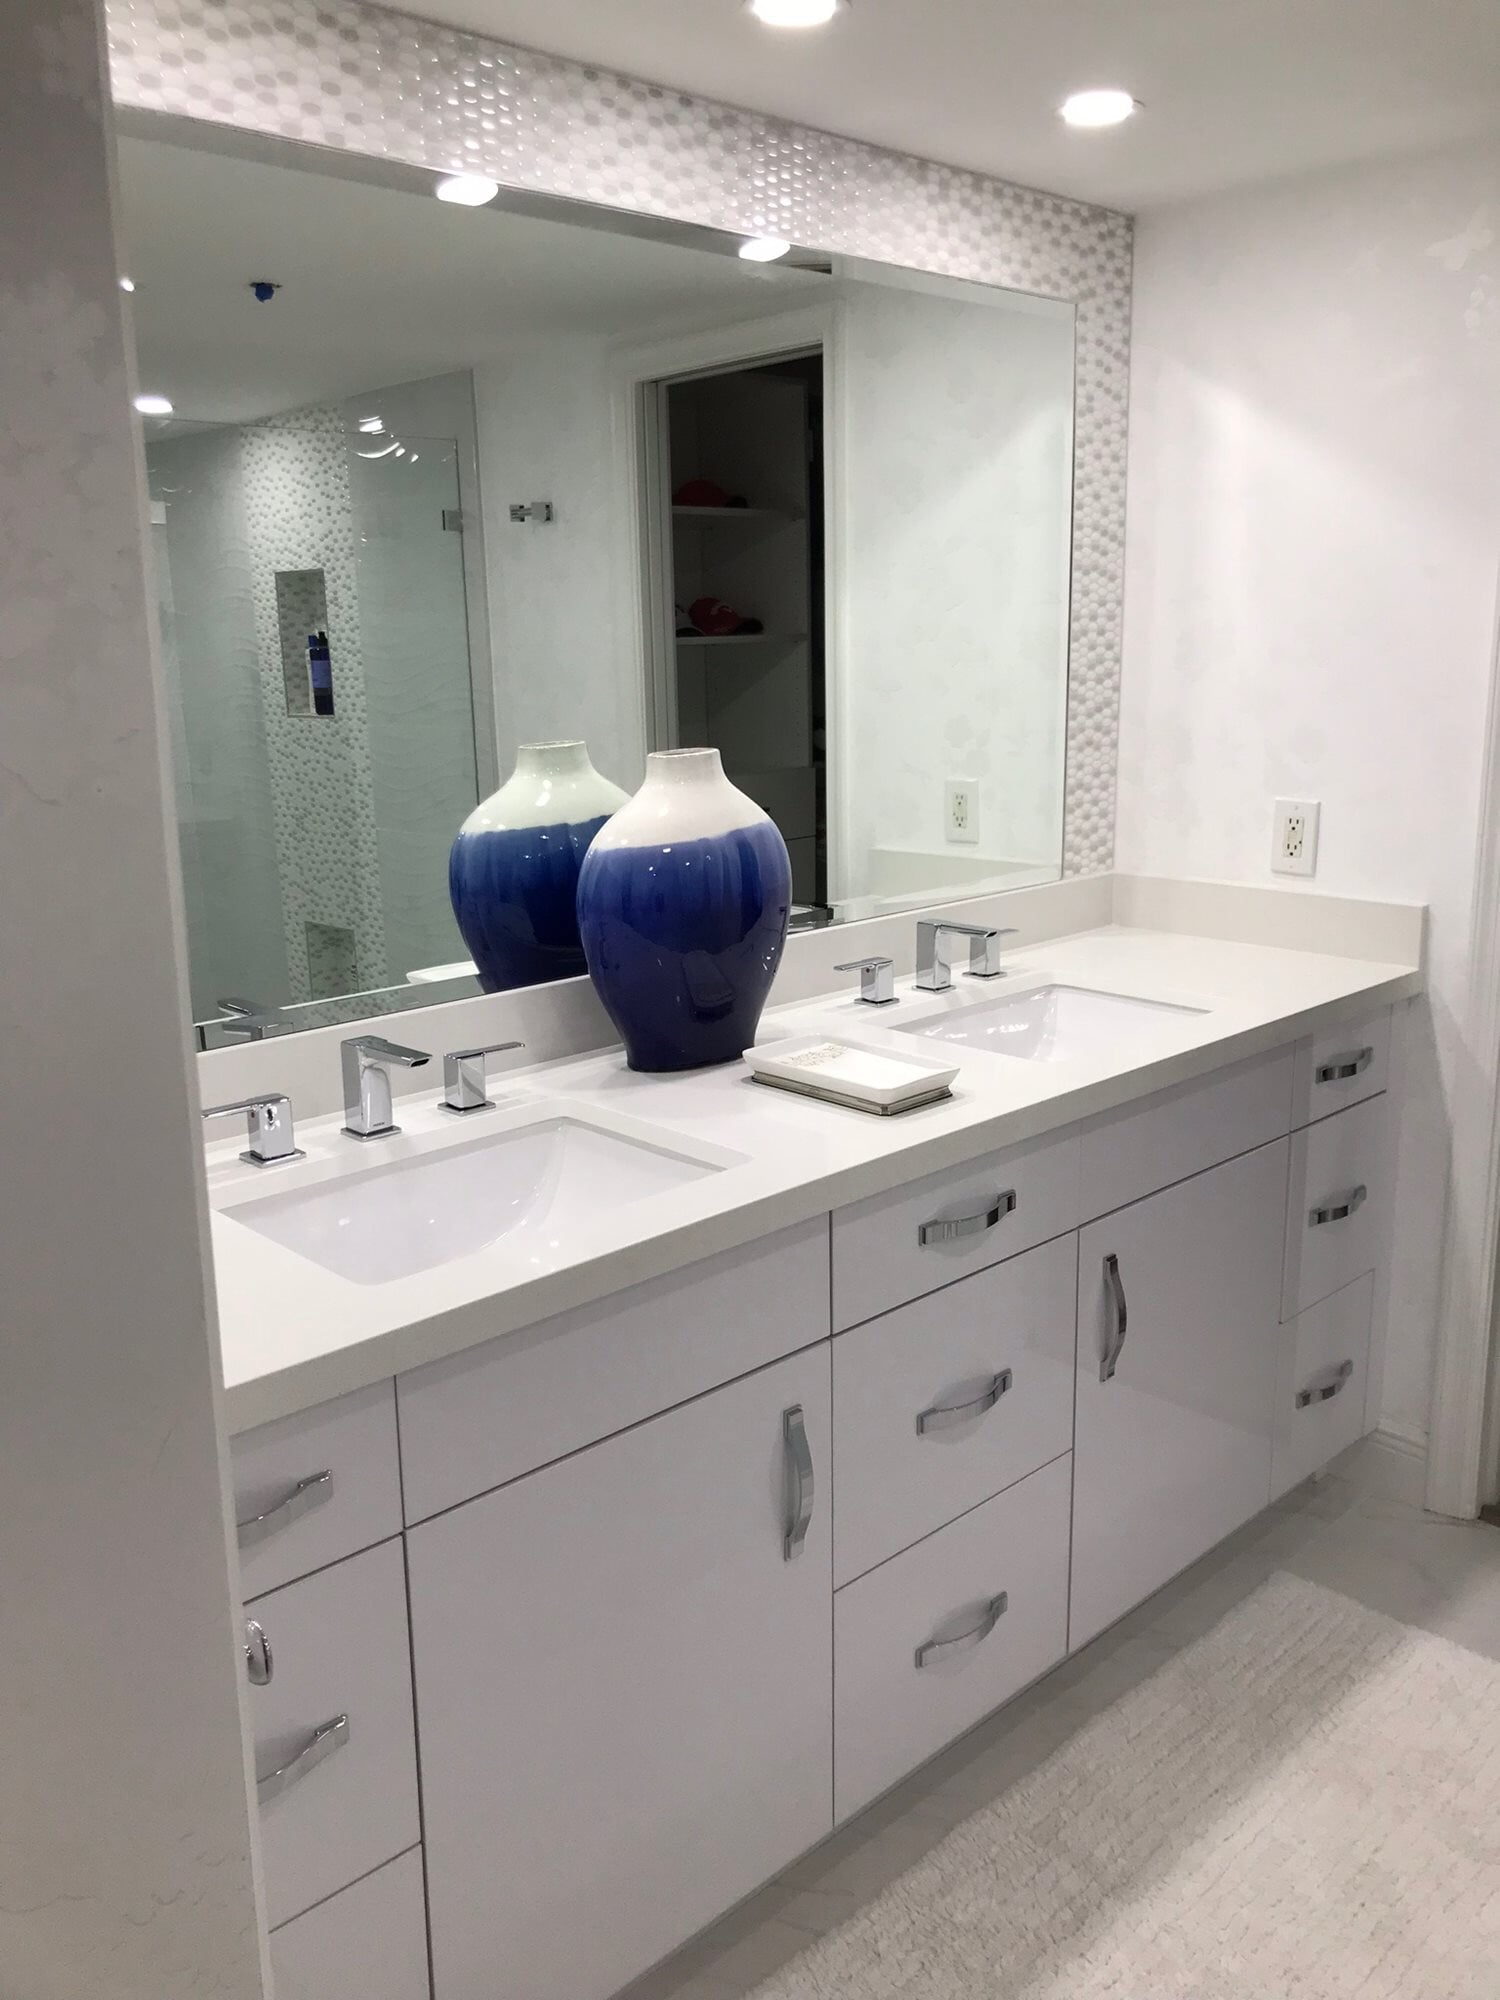 White vanity and countertop in Juno Beach, FL from Floors For You Kitchen & Bath